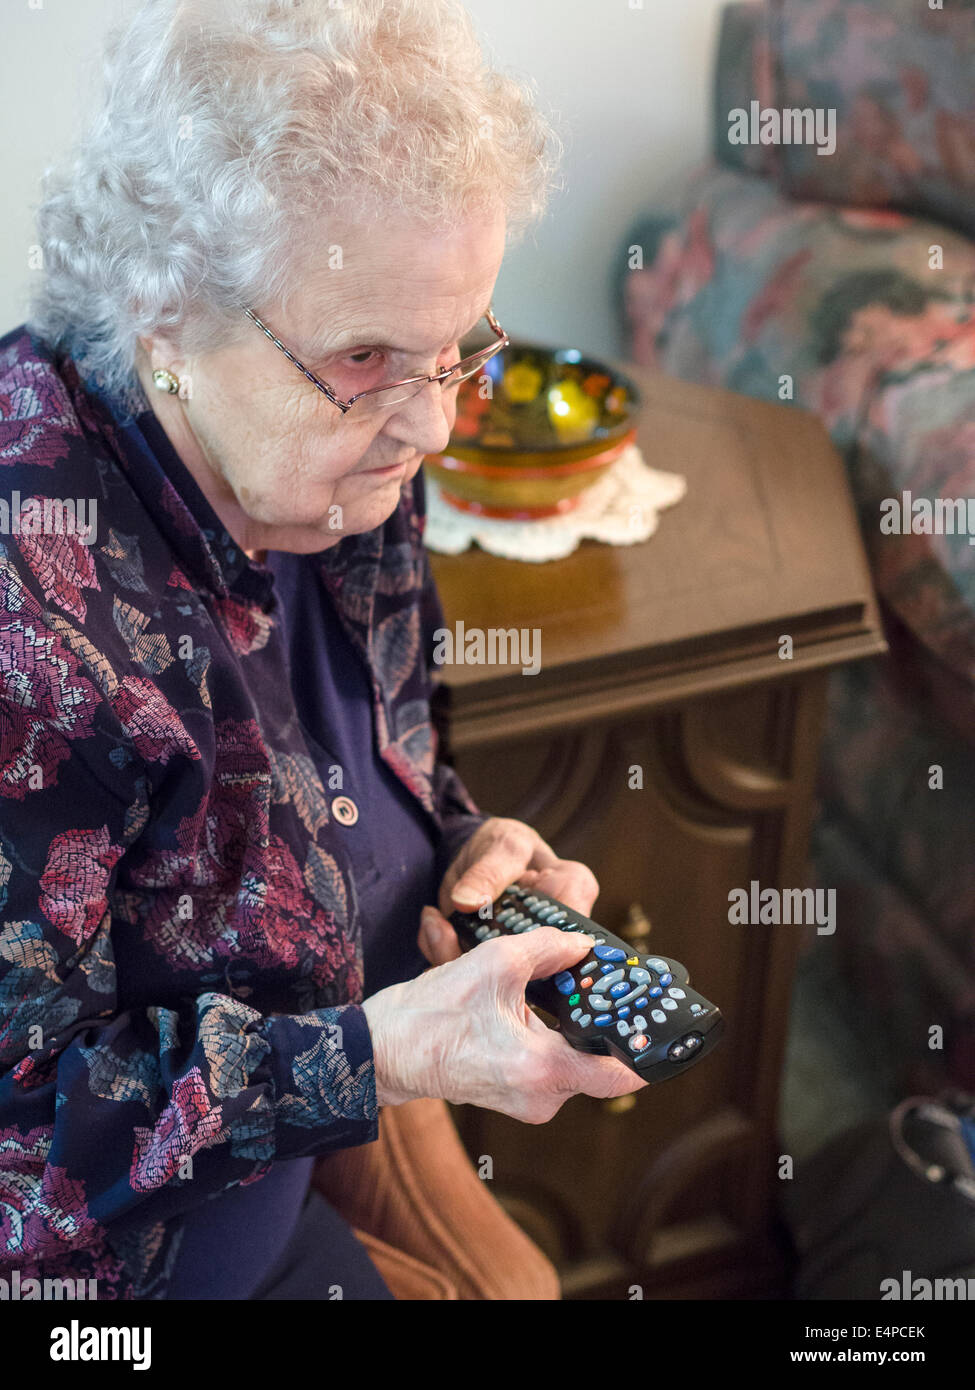 Learning the TV Remote . A senior woman adjusts her TV with a complicated remote control.  Ottawa, Ontario, Canada Stock Photo